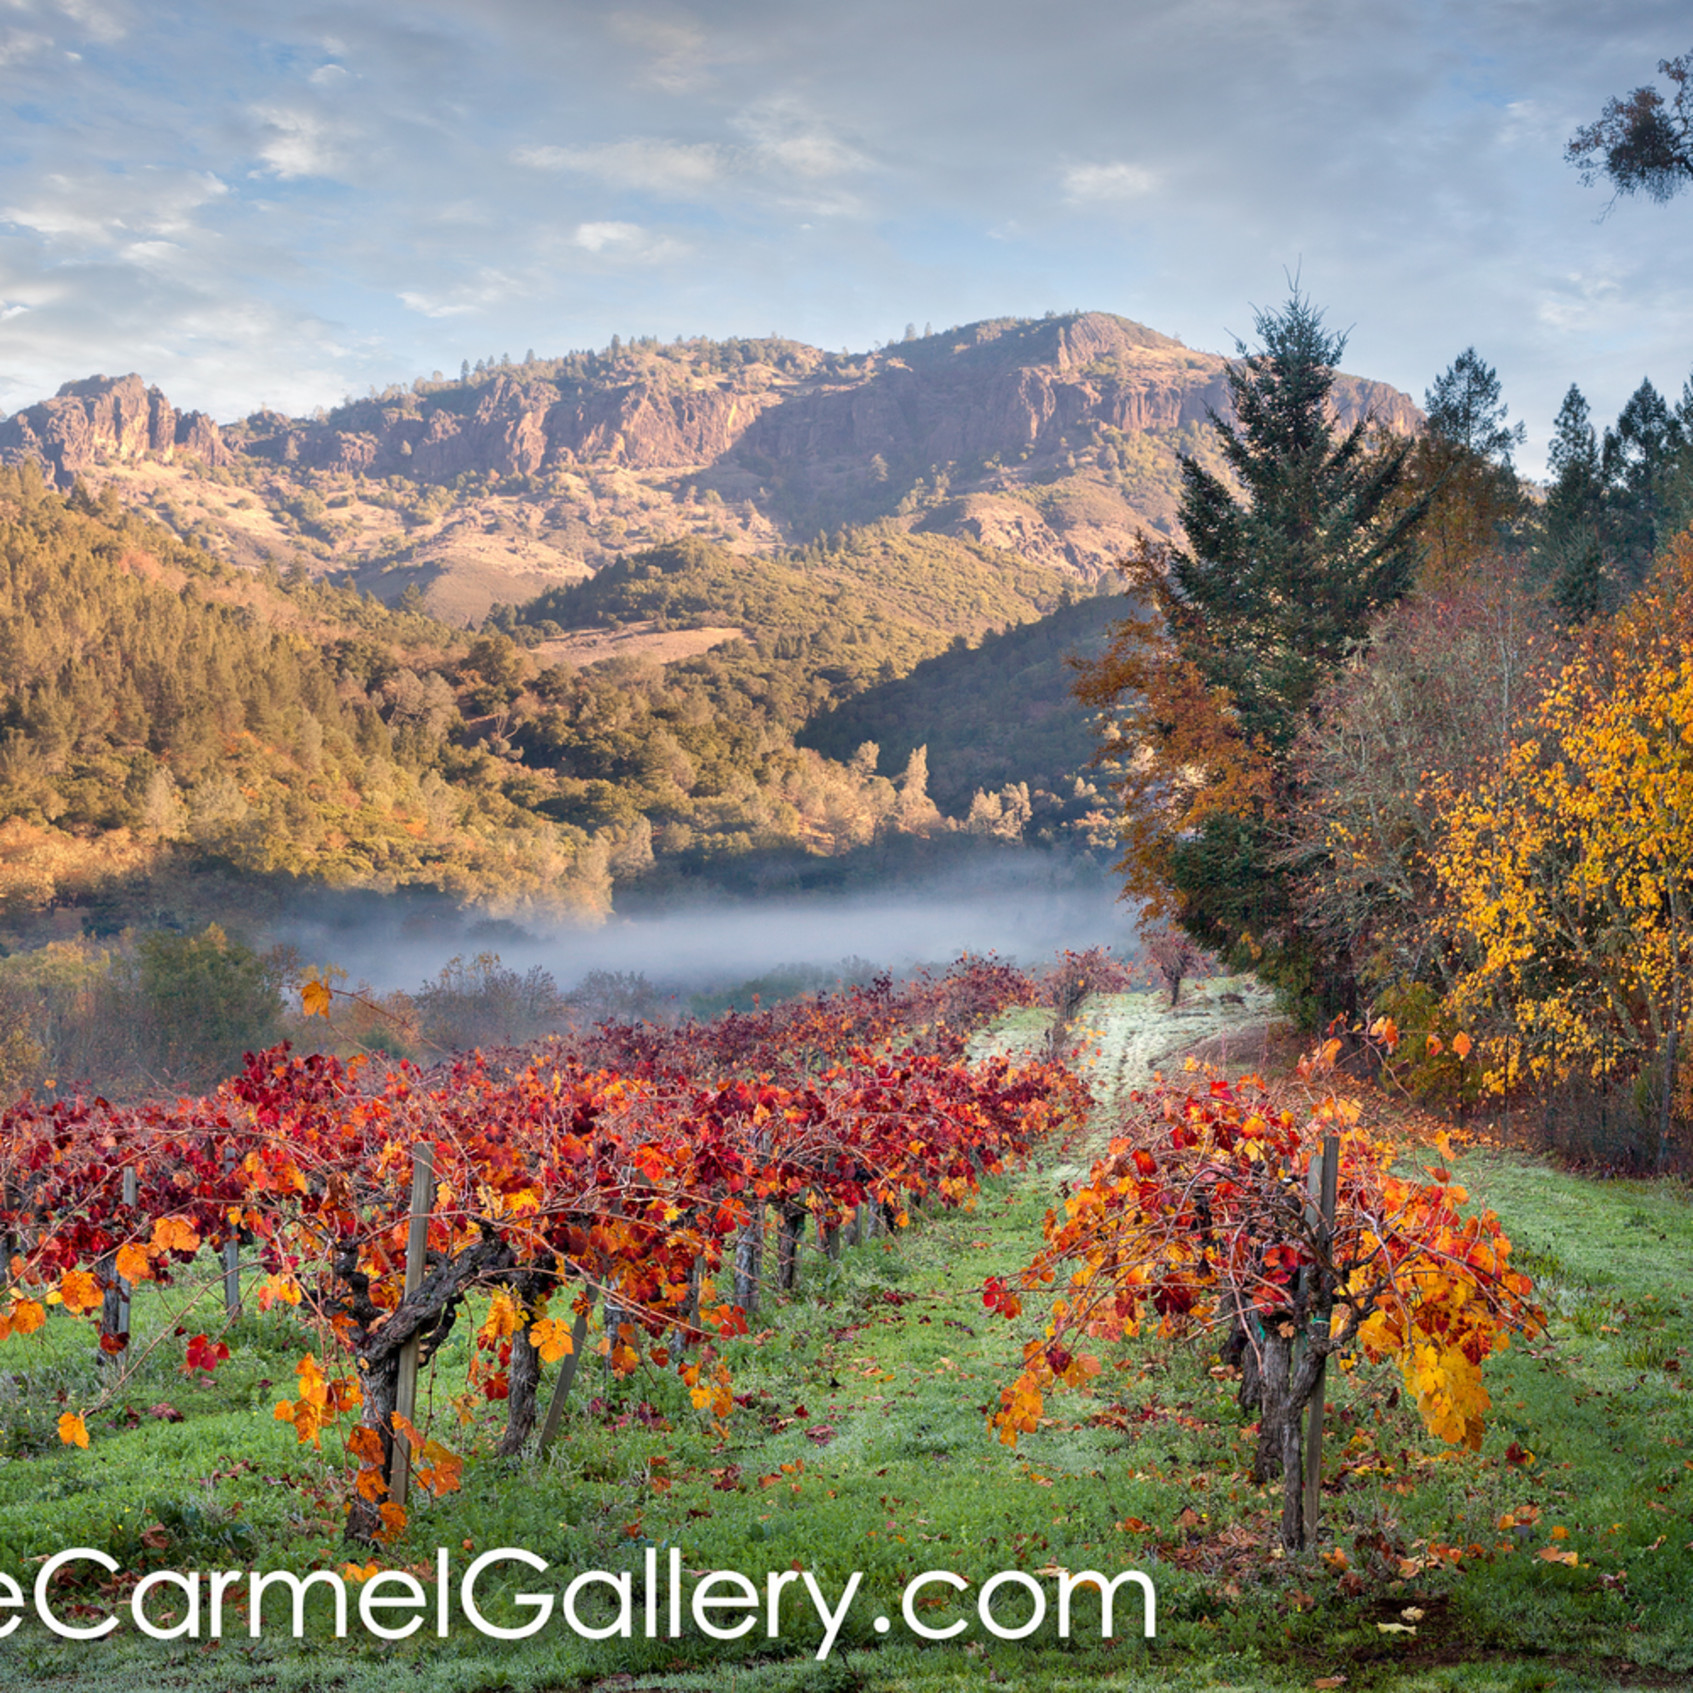 Autumn in calistoga i4ydts